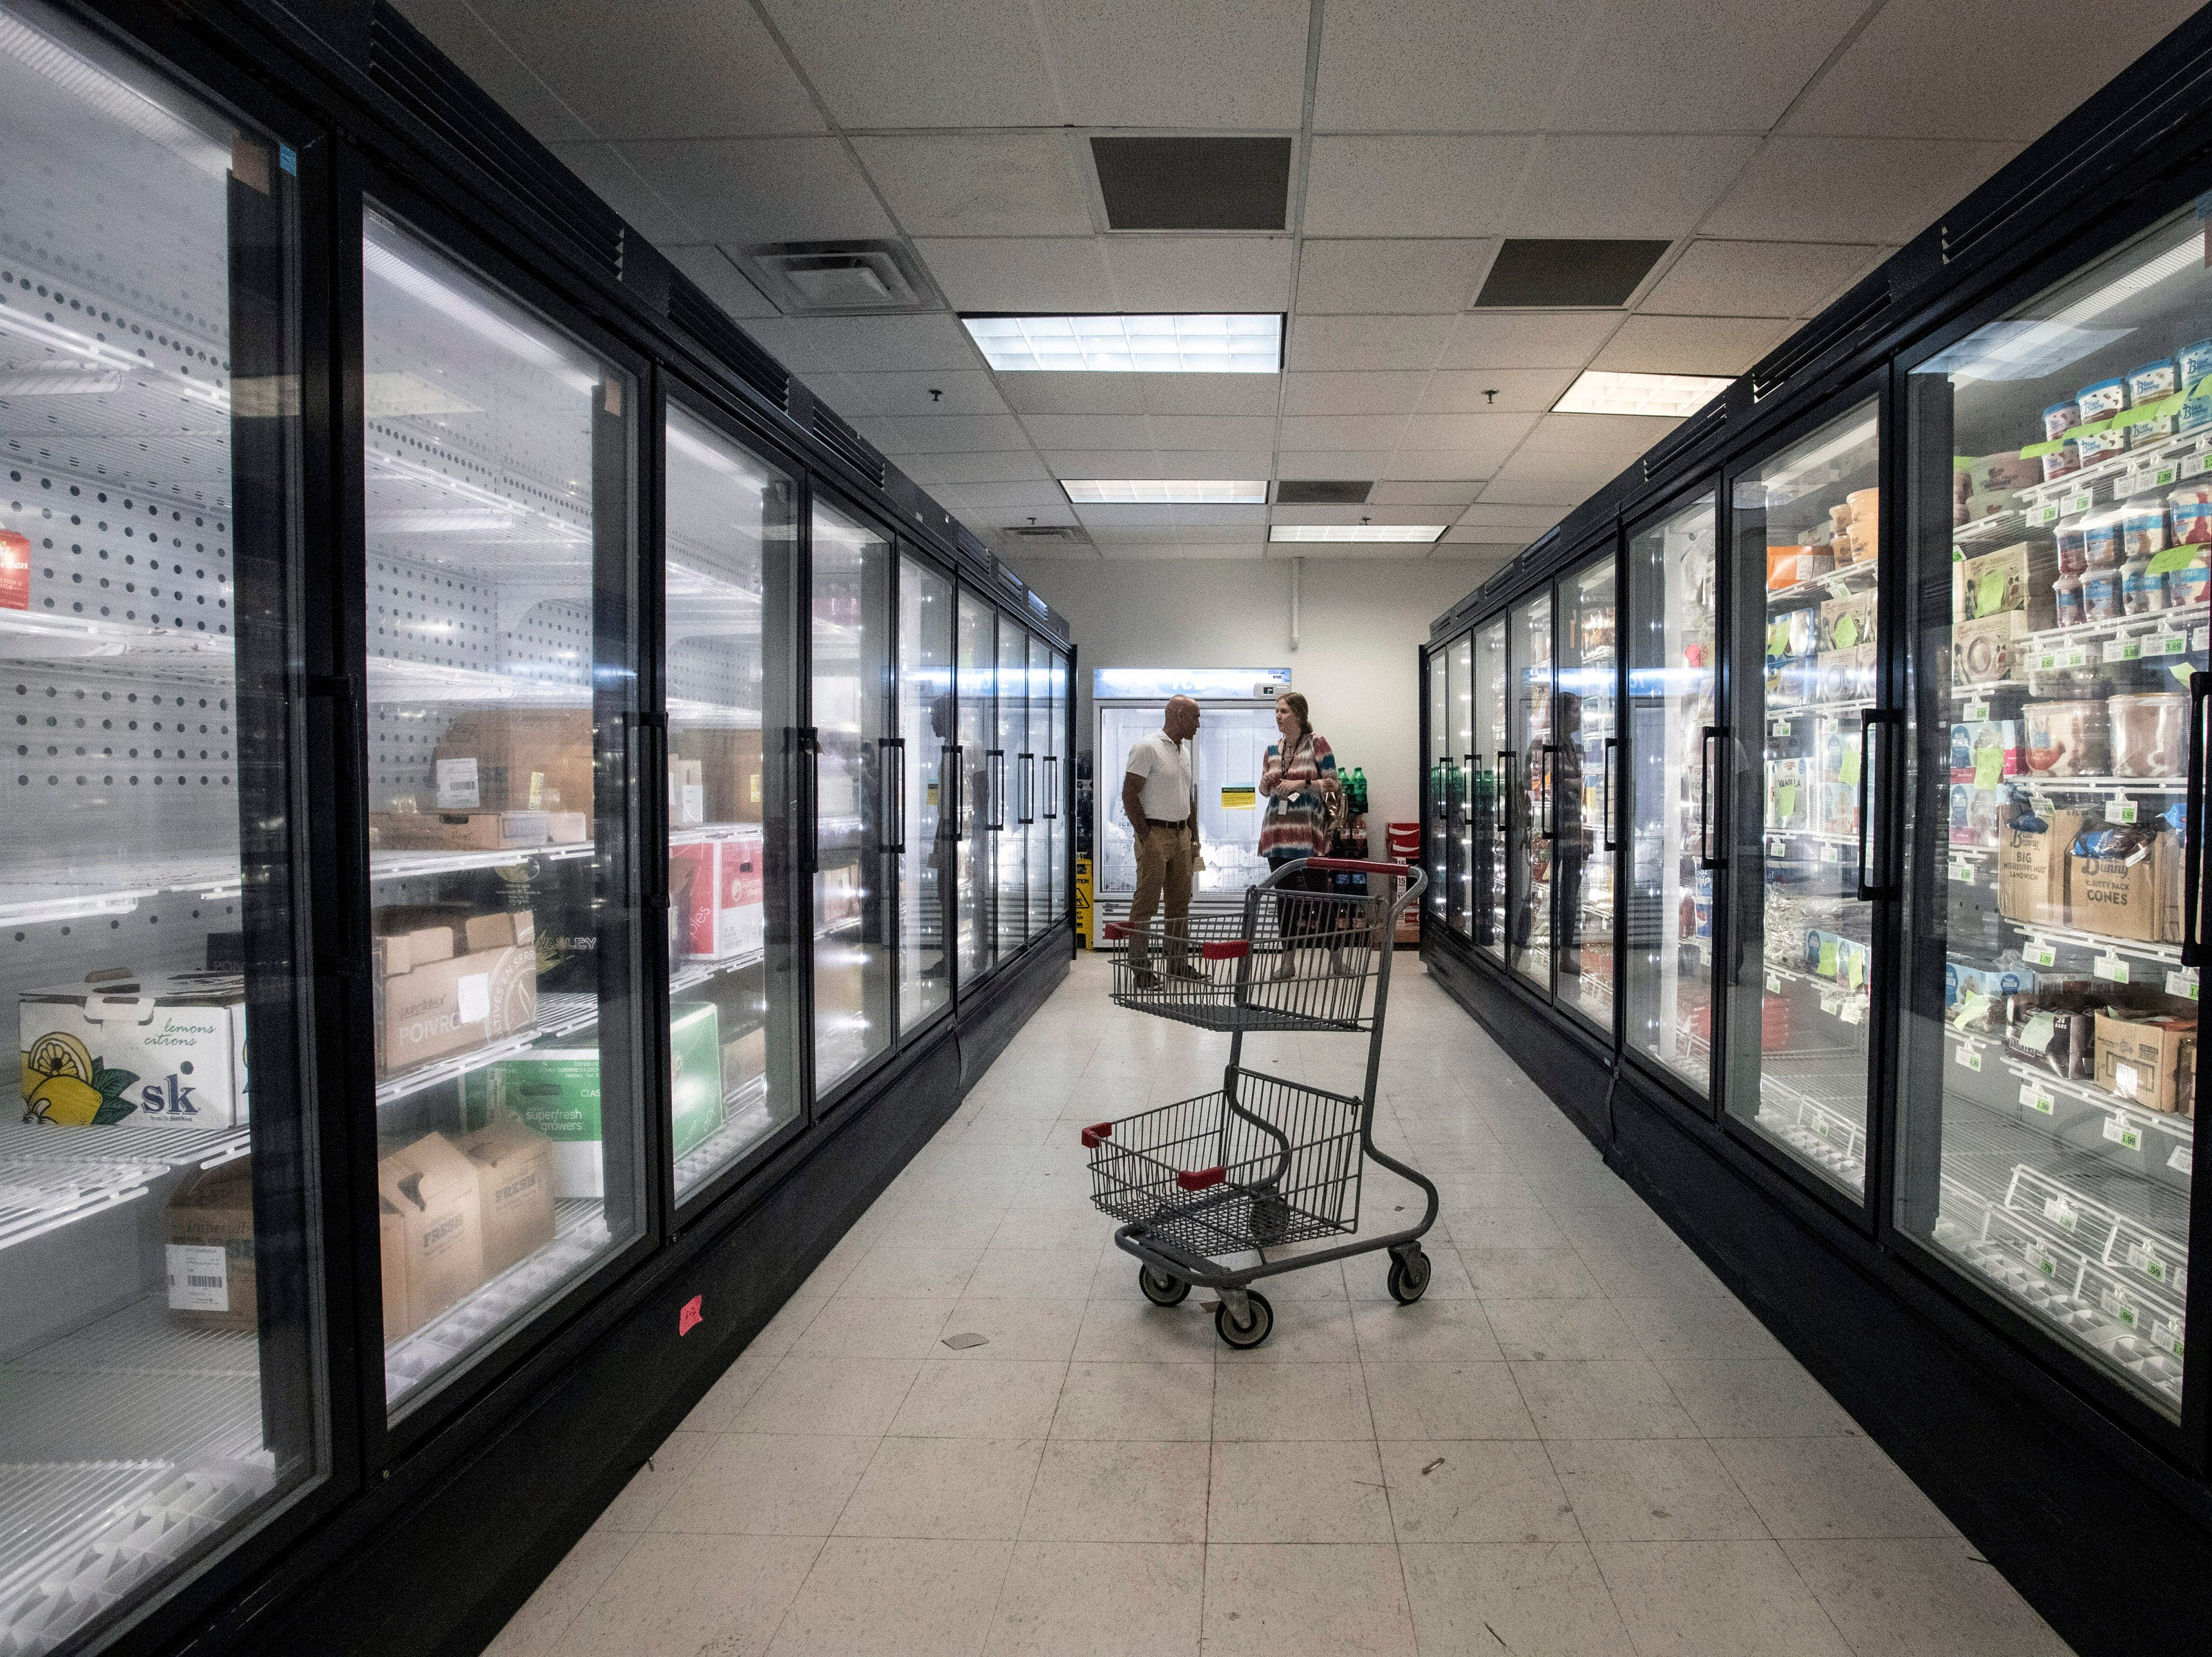 Refrigerators were in the process of being stocked on Friday morning as the new Superior Market & Deli prepared to open in the Fincastle Building at Third & Broadway. 5/10/19